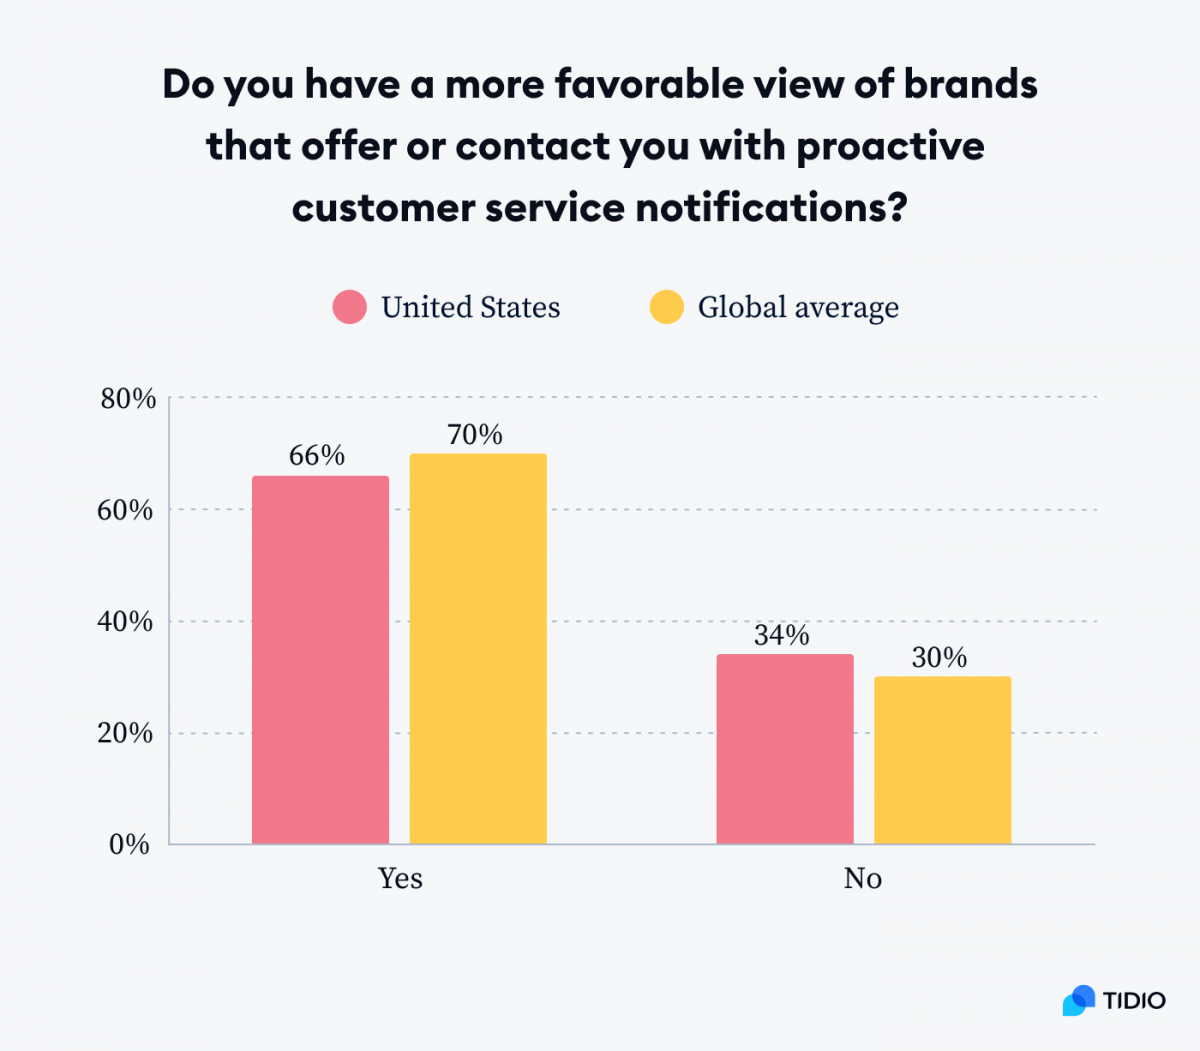 A graph presenting US (66%) and Global average (70%) for customers that have a more favorable view of brands that offer or contact them with proactive customer service notification